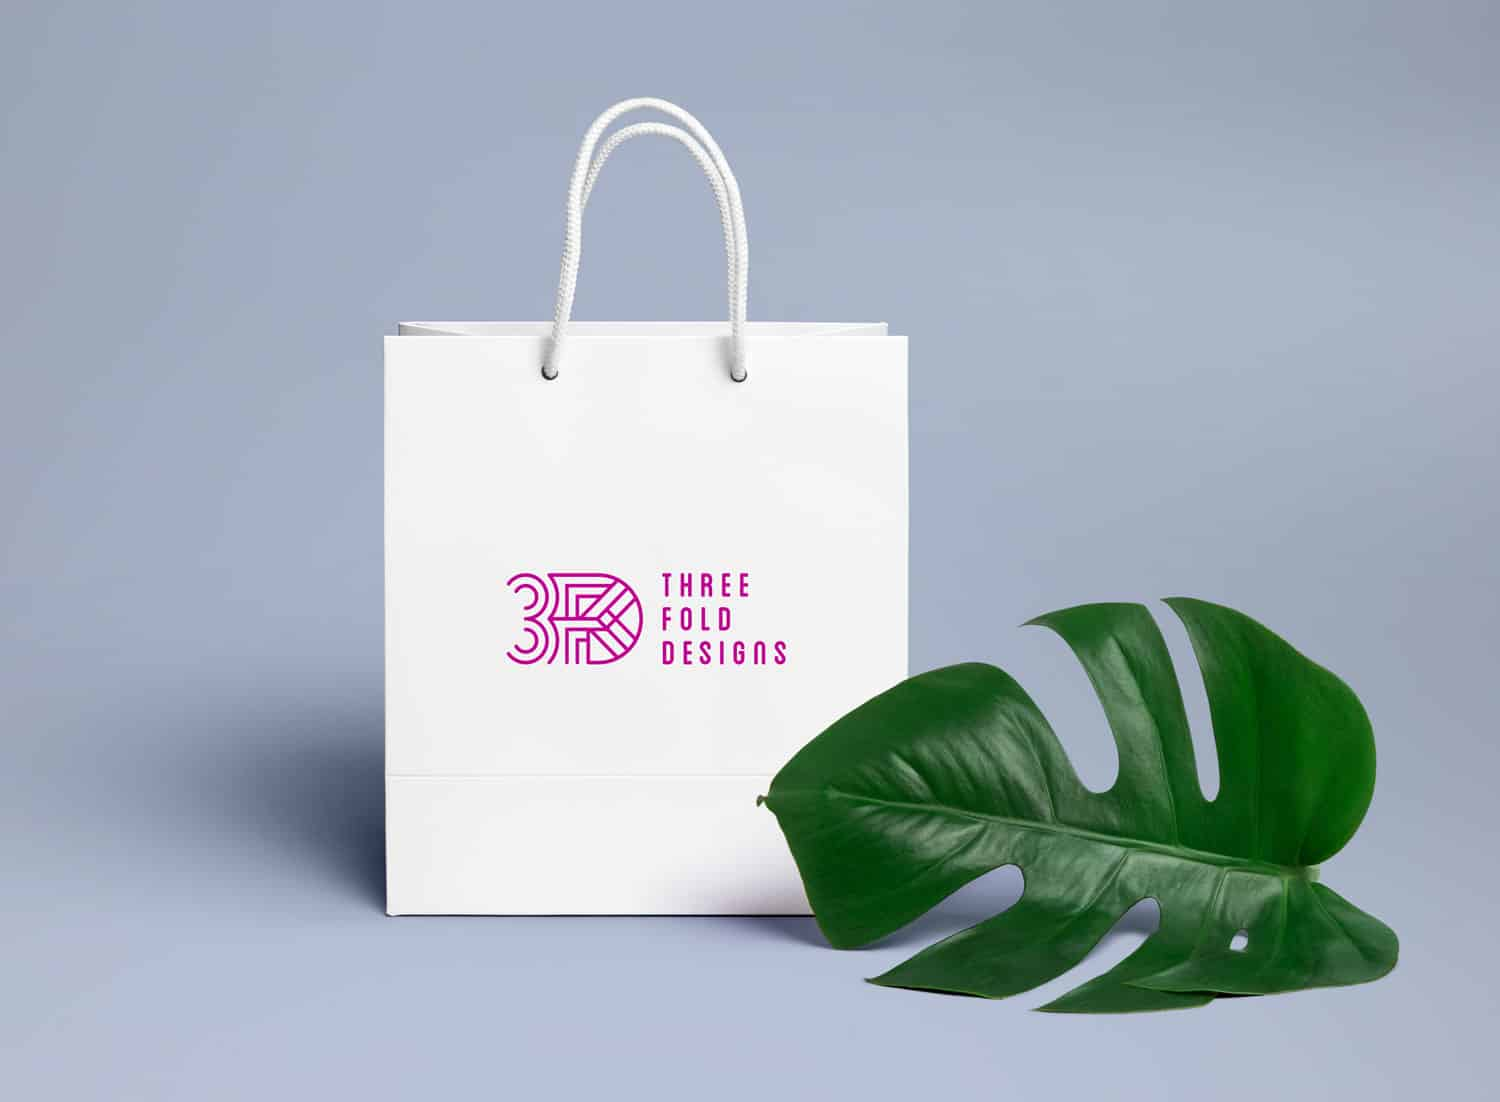 Threefold Designs retail shopping bag design by Flux Visual Communication